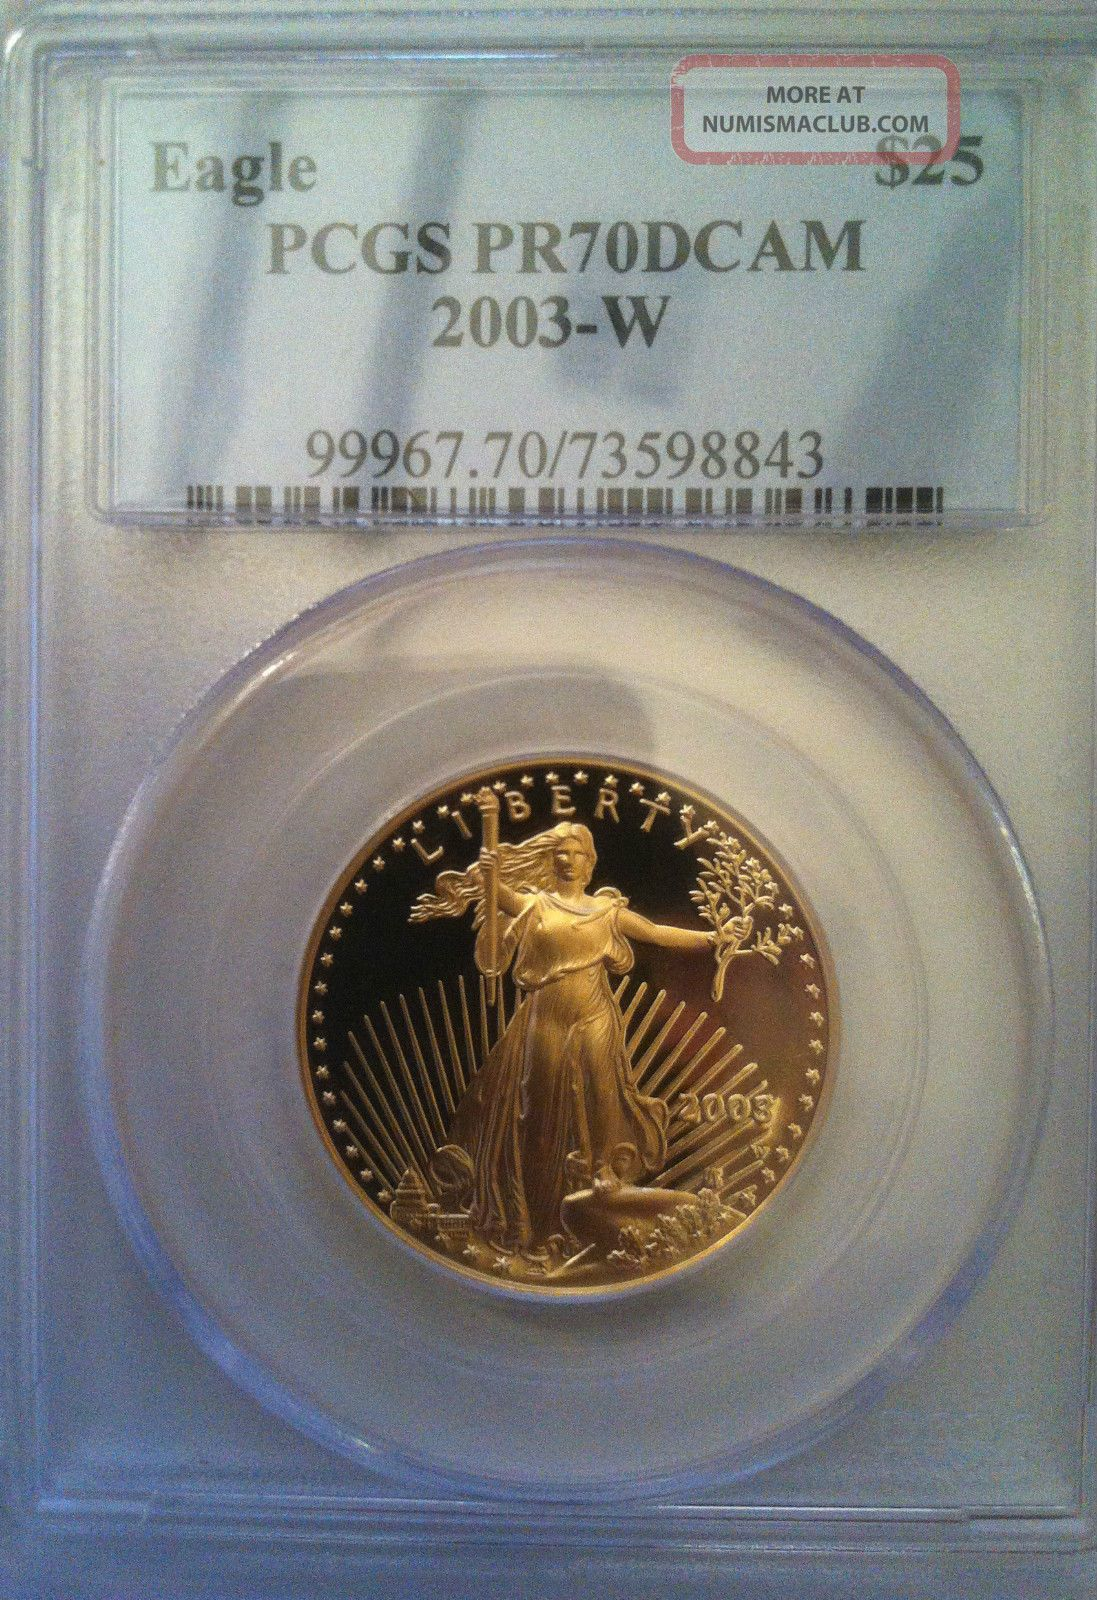 2003 - W Pcgs $25 Pr70dcam 1/2 Oz.  0.  999 Fine Gold American Eagle Gold photo